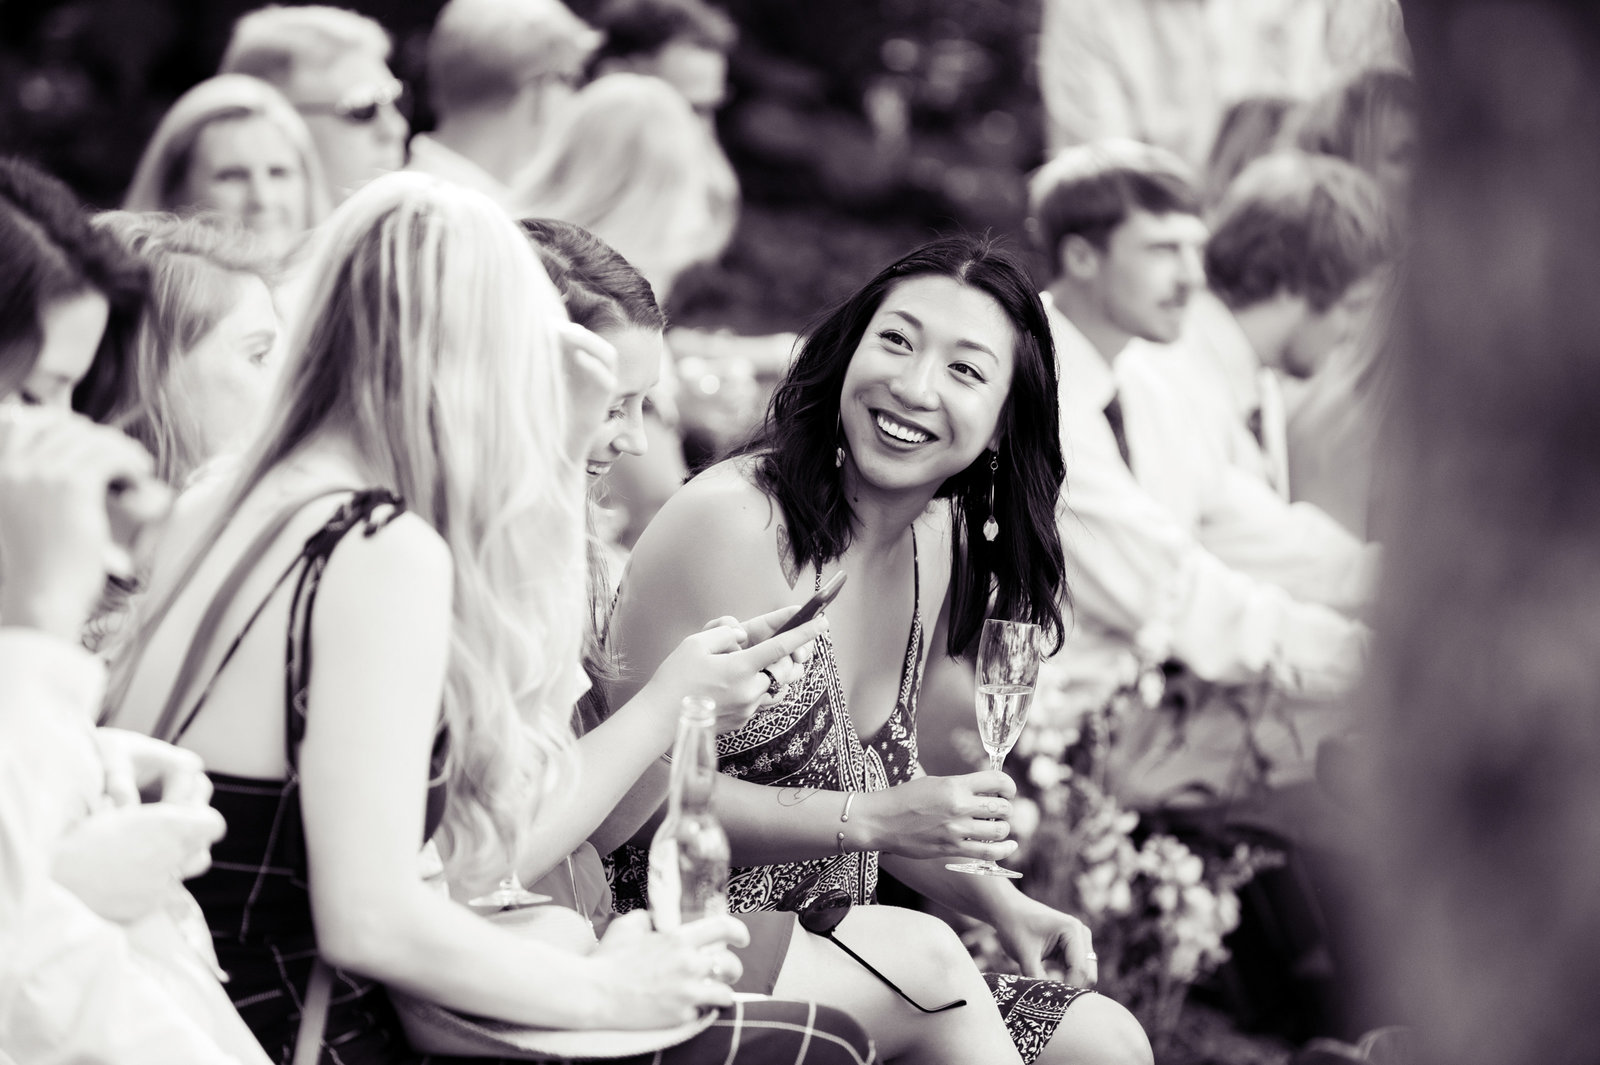 wedding guests laugh as they wait for the ceremony to begin